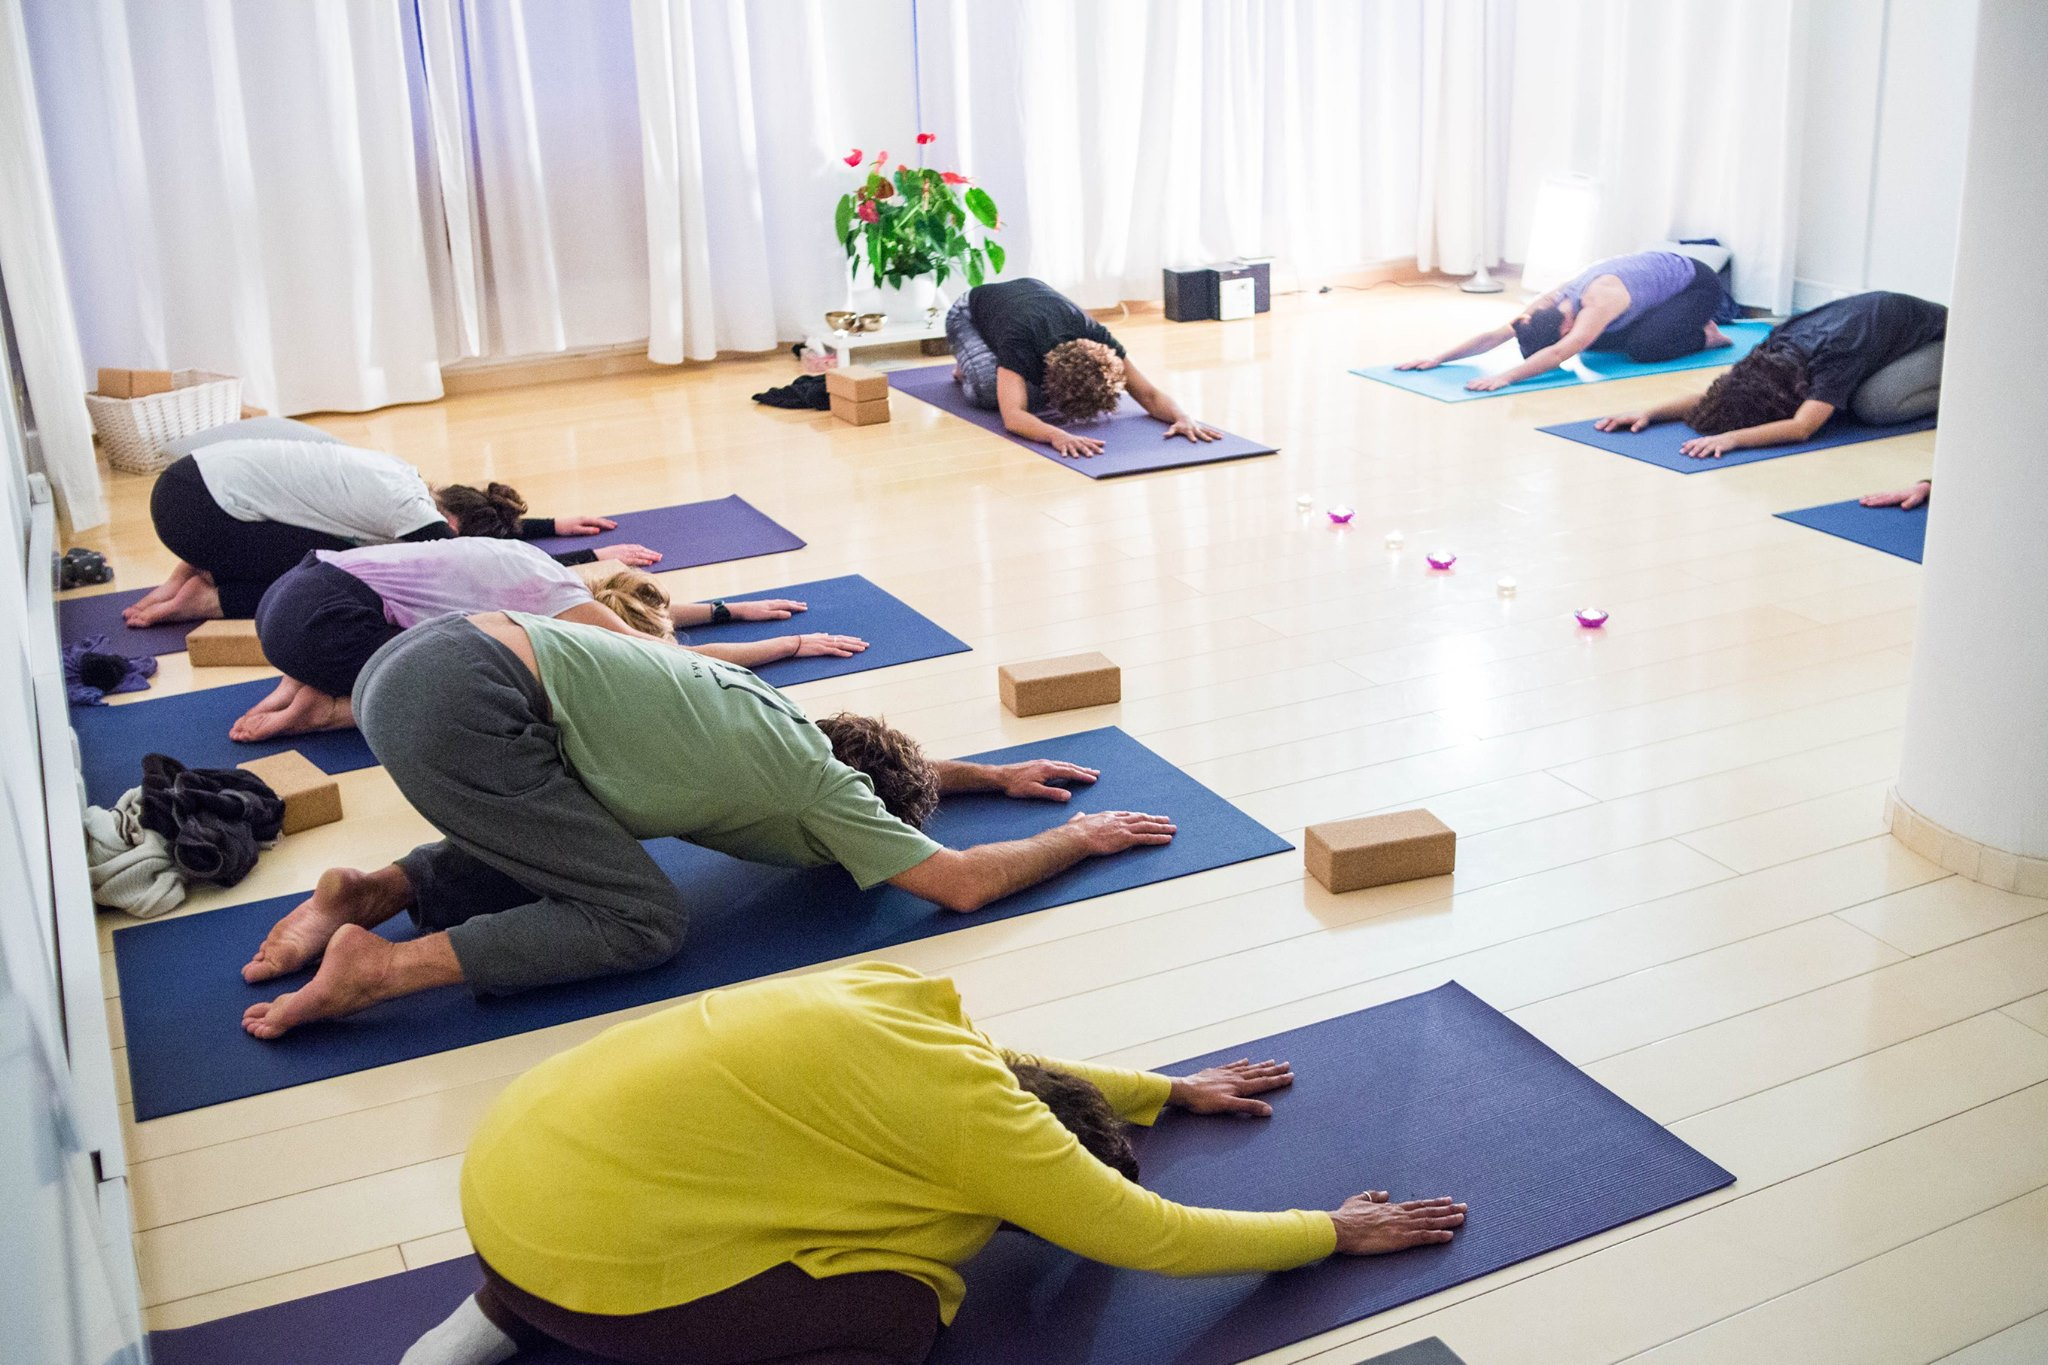 ride-on-retreats-yoga-session-with-maria.jpg